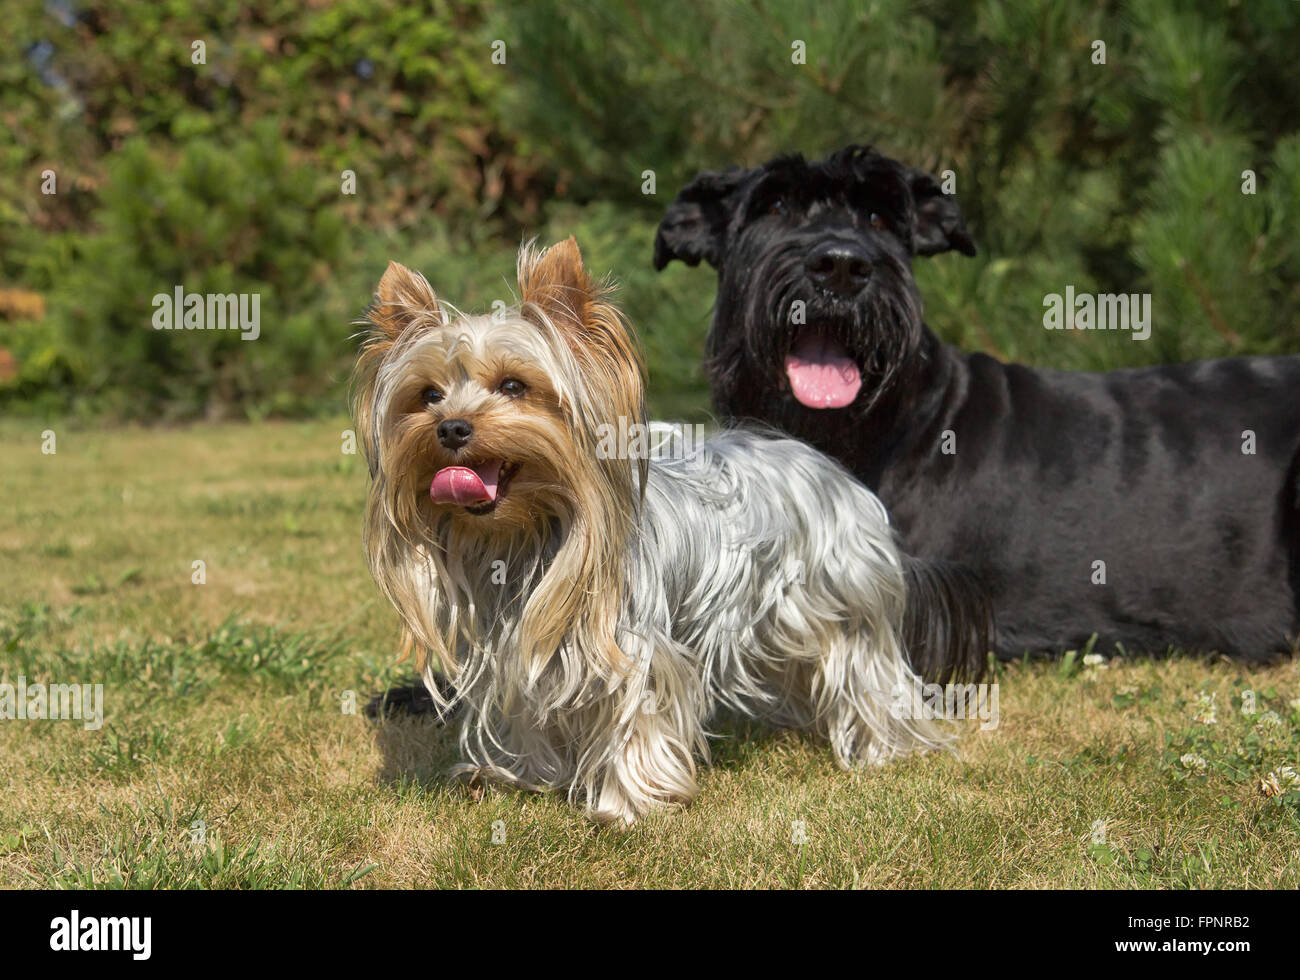 Yorkshire Terrier and Big Black Schnauzer Dod on the lawn. Both dogs have protruding tongue. - Stock Image